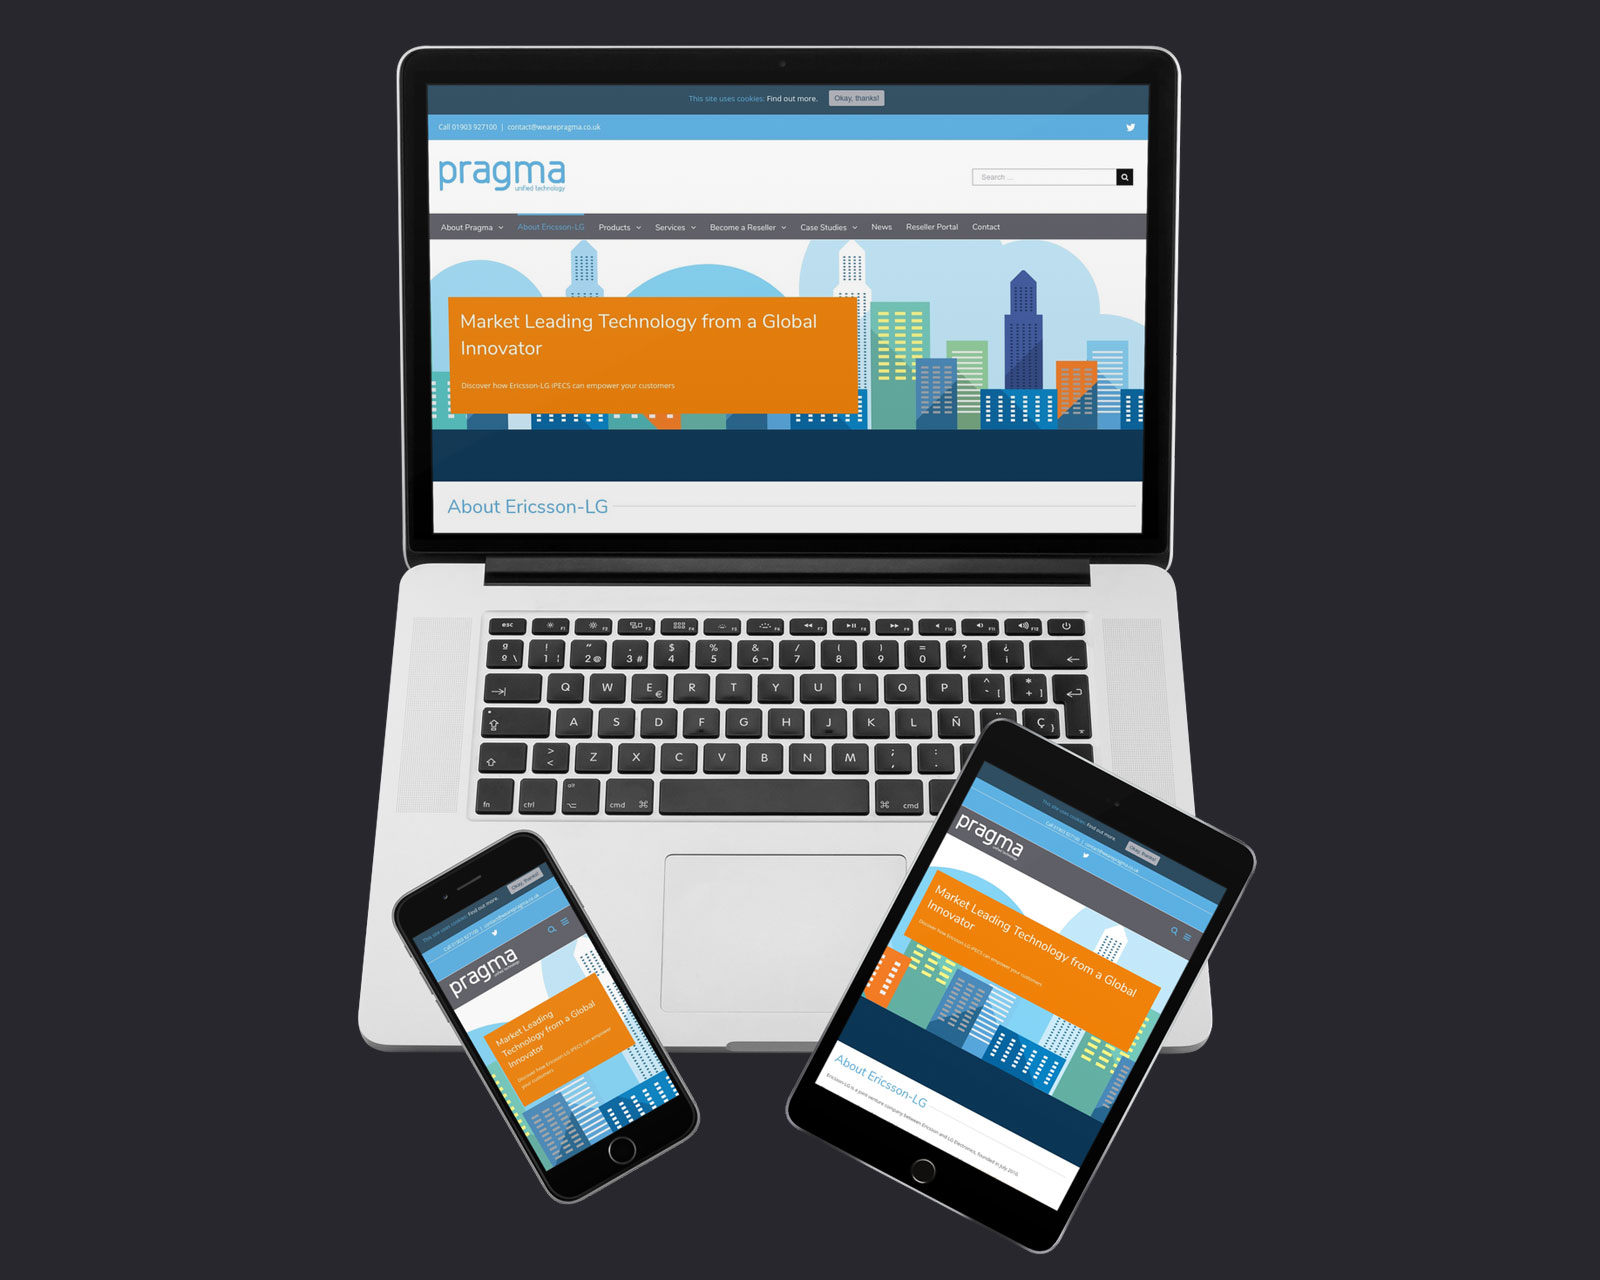 Pragma website design on a laptop, tablet and mobile